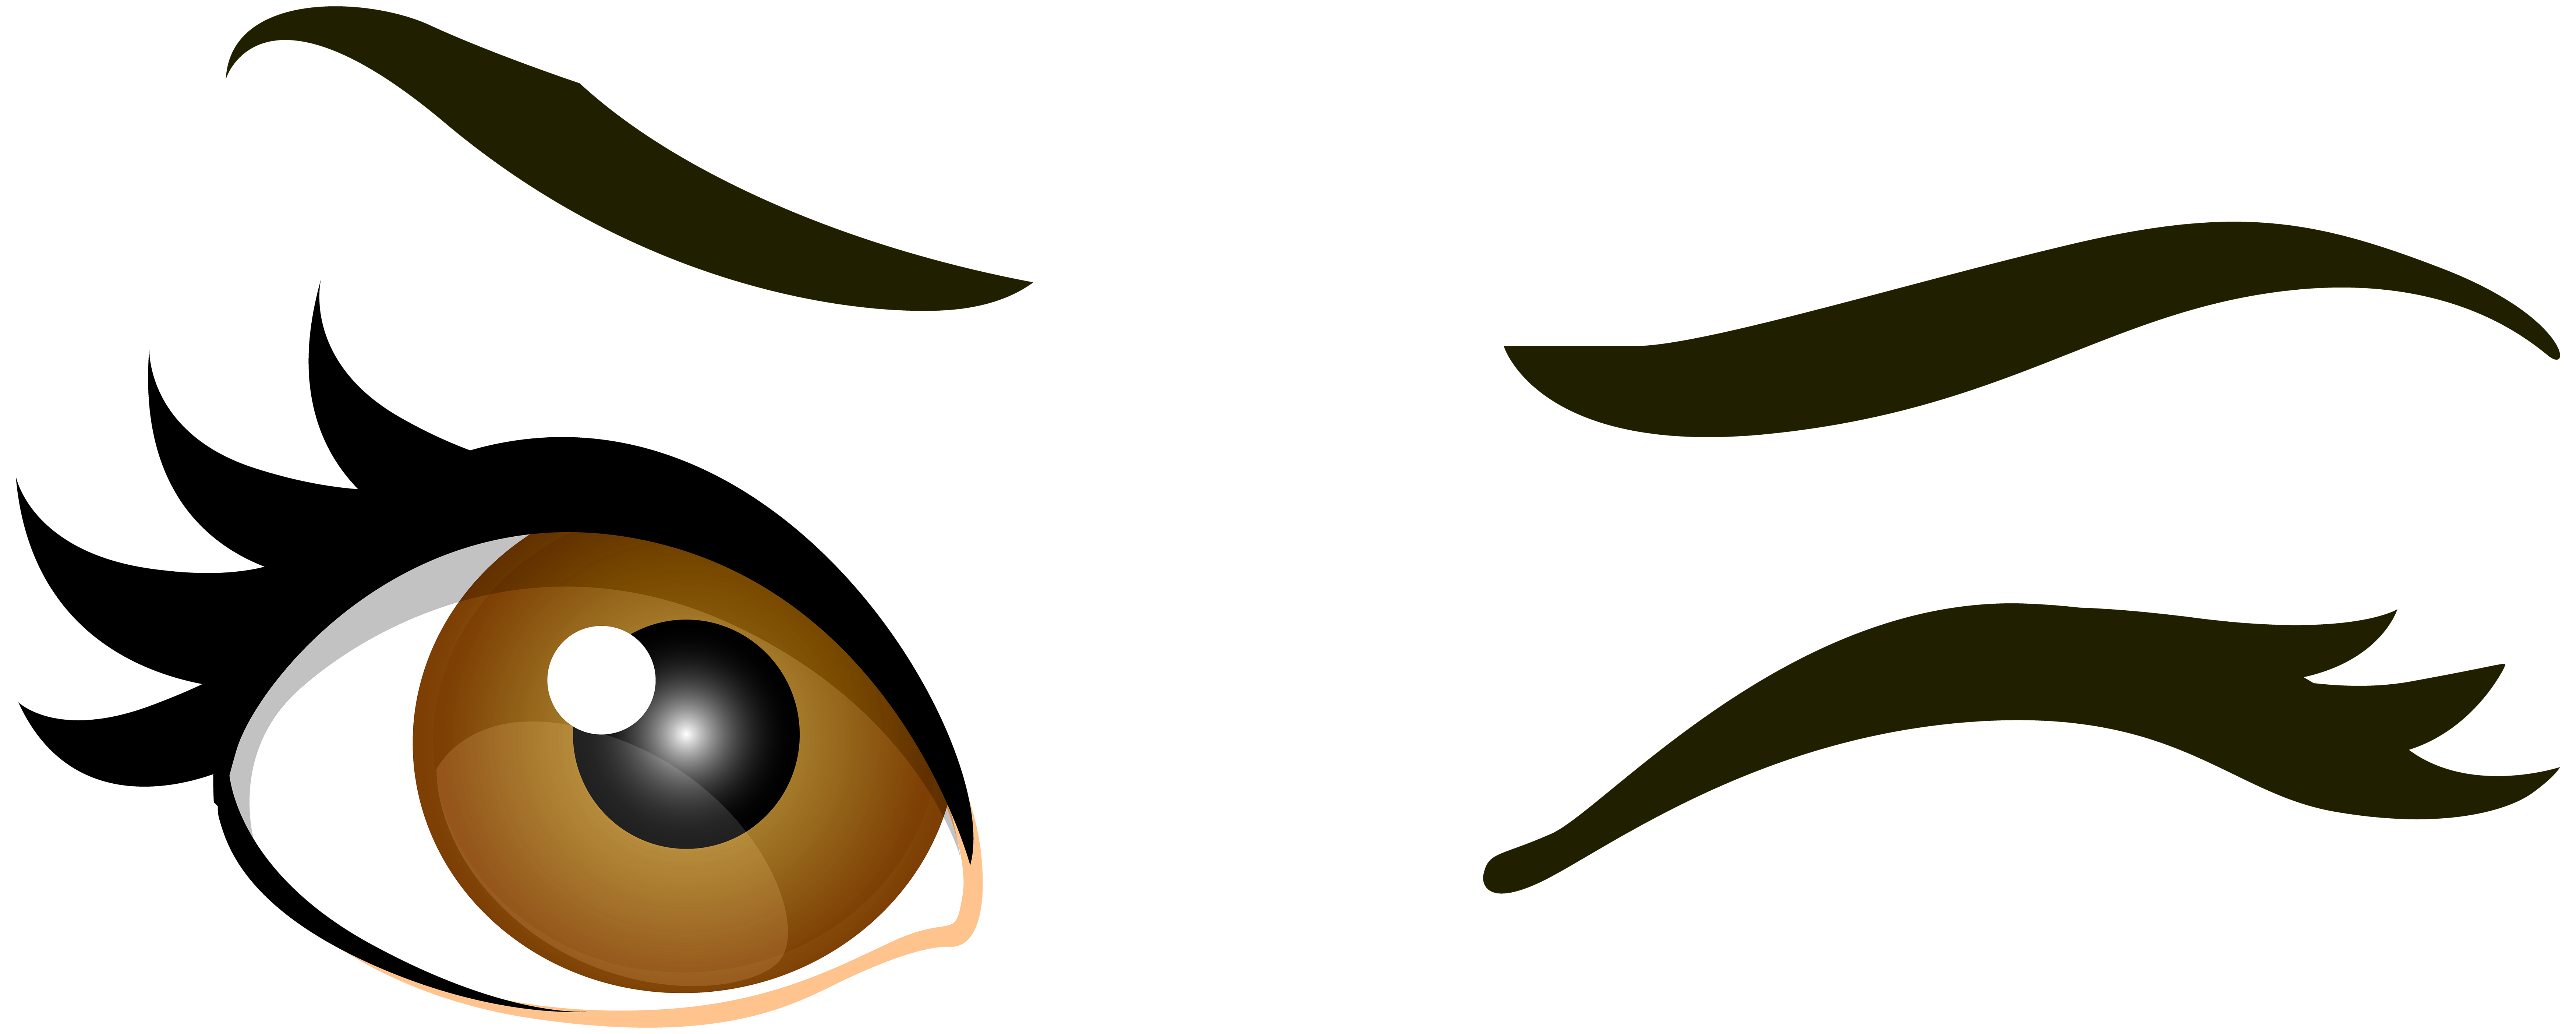 Brown winking eyes png. Clipart mustache eye